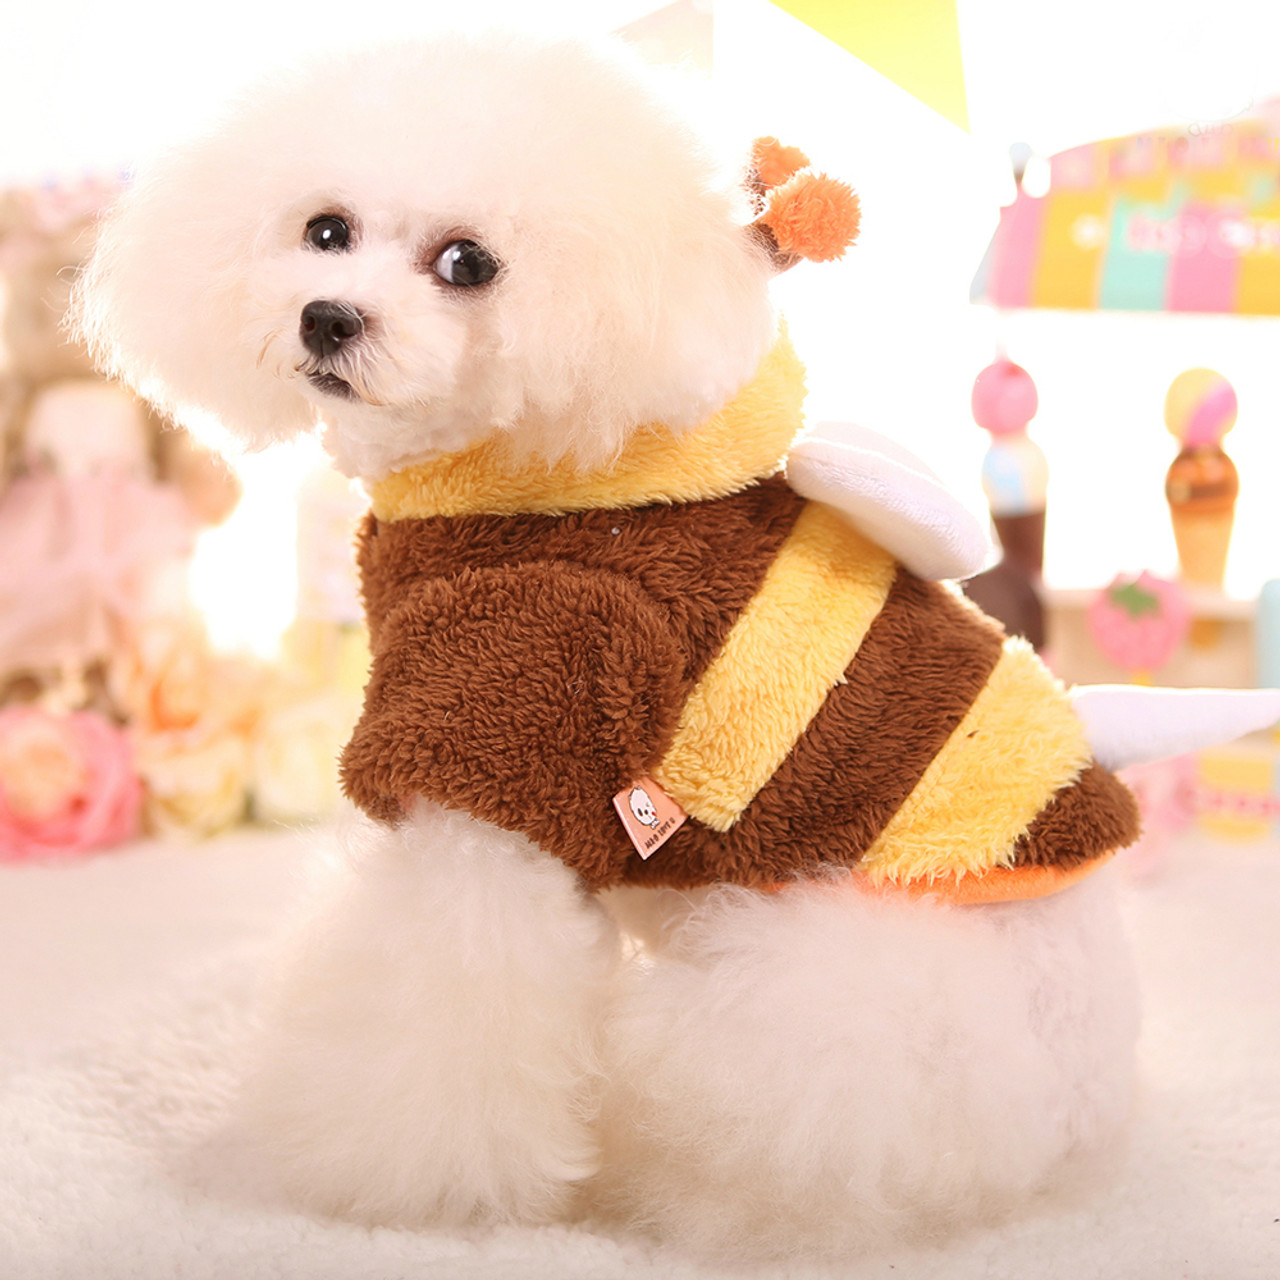 Pet Products Classic Solid Color Pet Dog Jumpsuit High Quality Thickening Warm Fleece Clothes For Dogs Winter Outdoor Windproof Puppy Costume Soft And Light